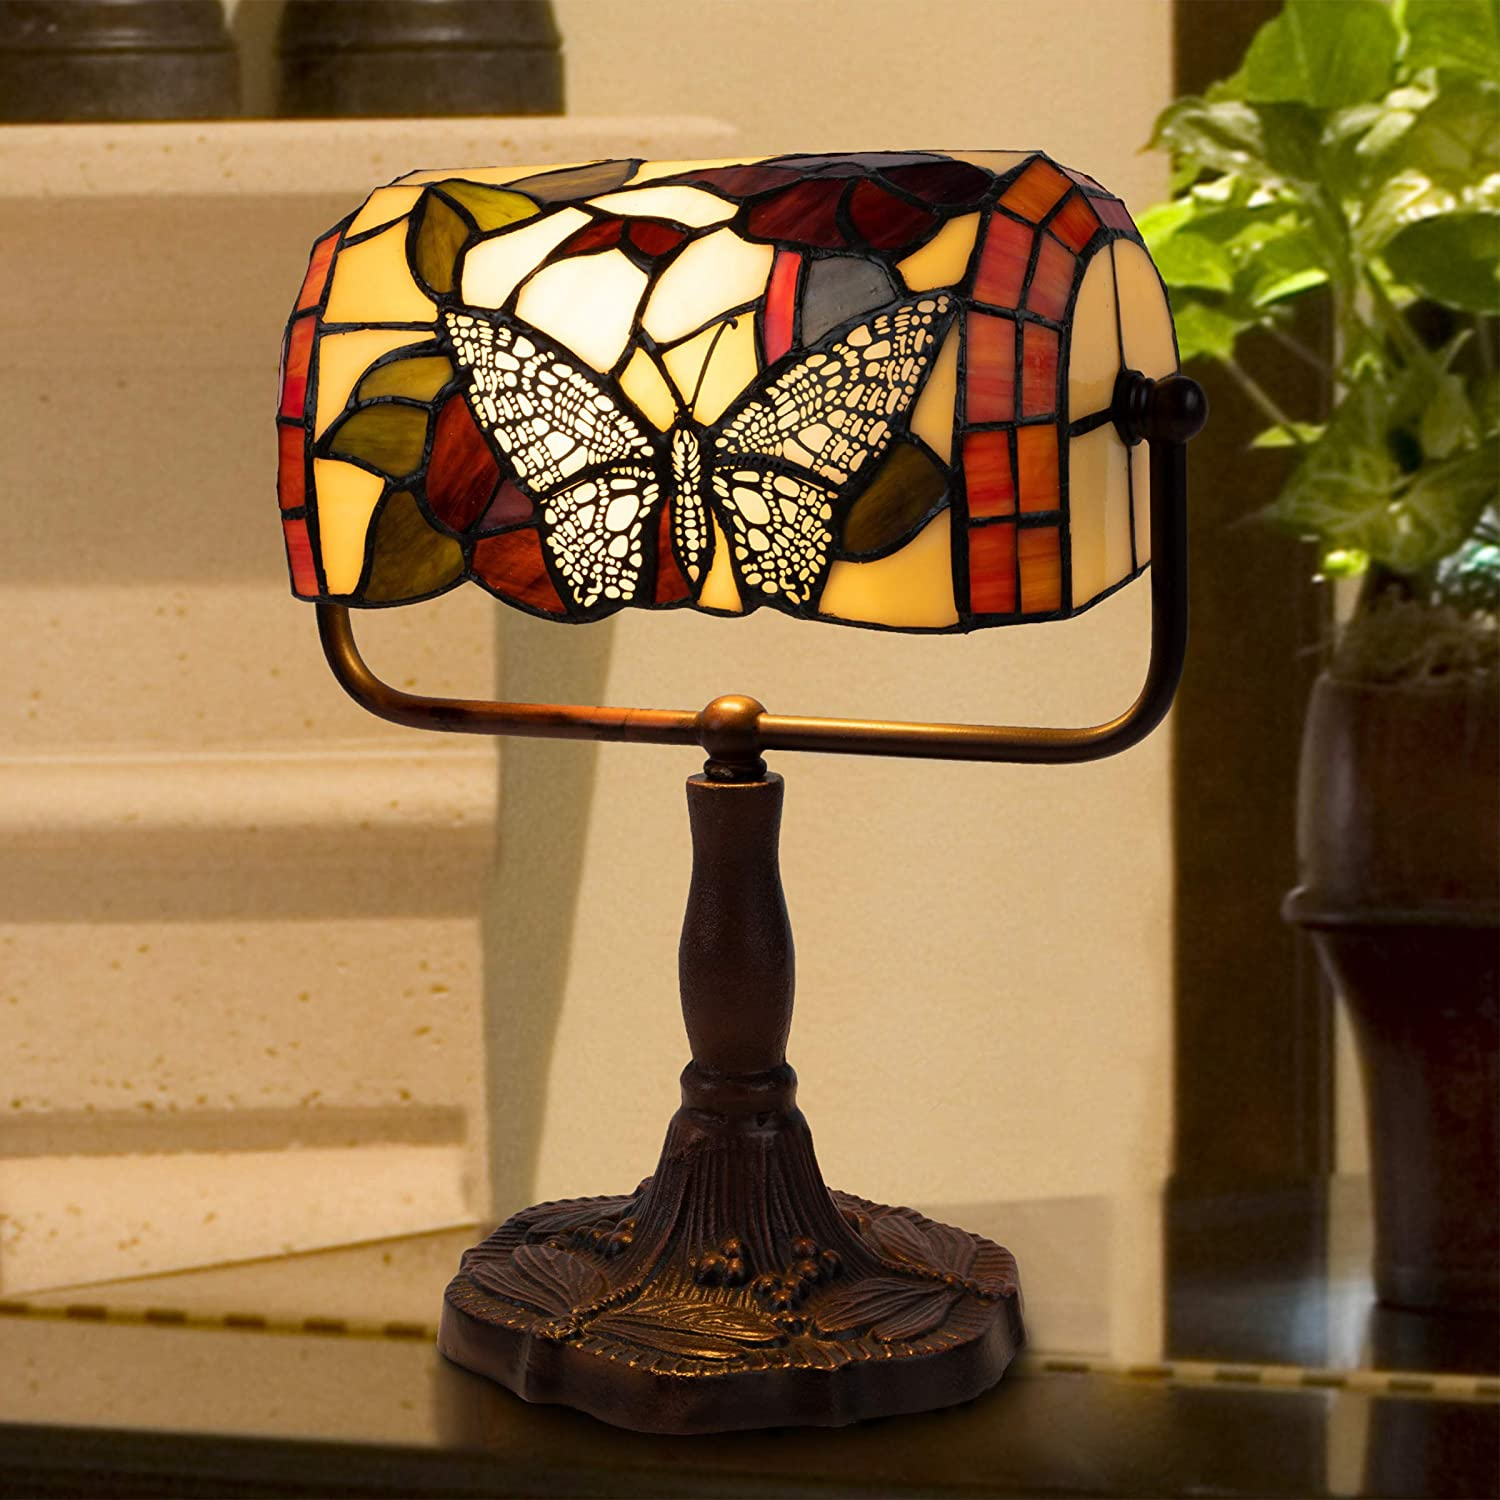 Bankers Lamp Tiffany style